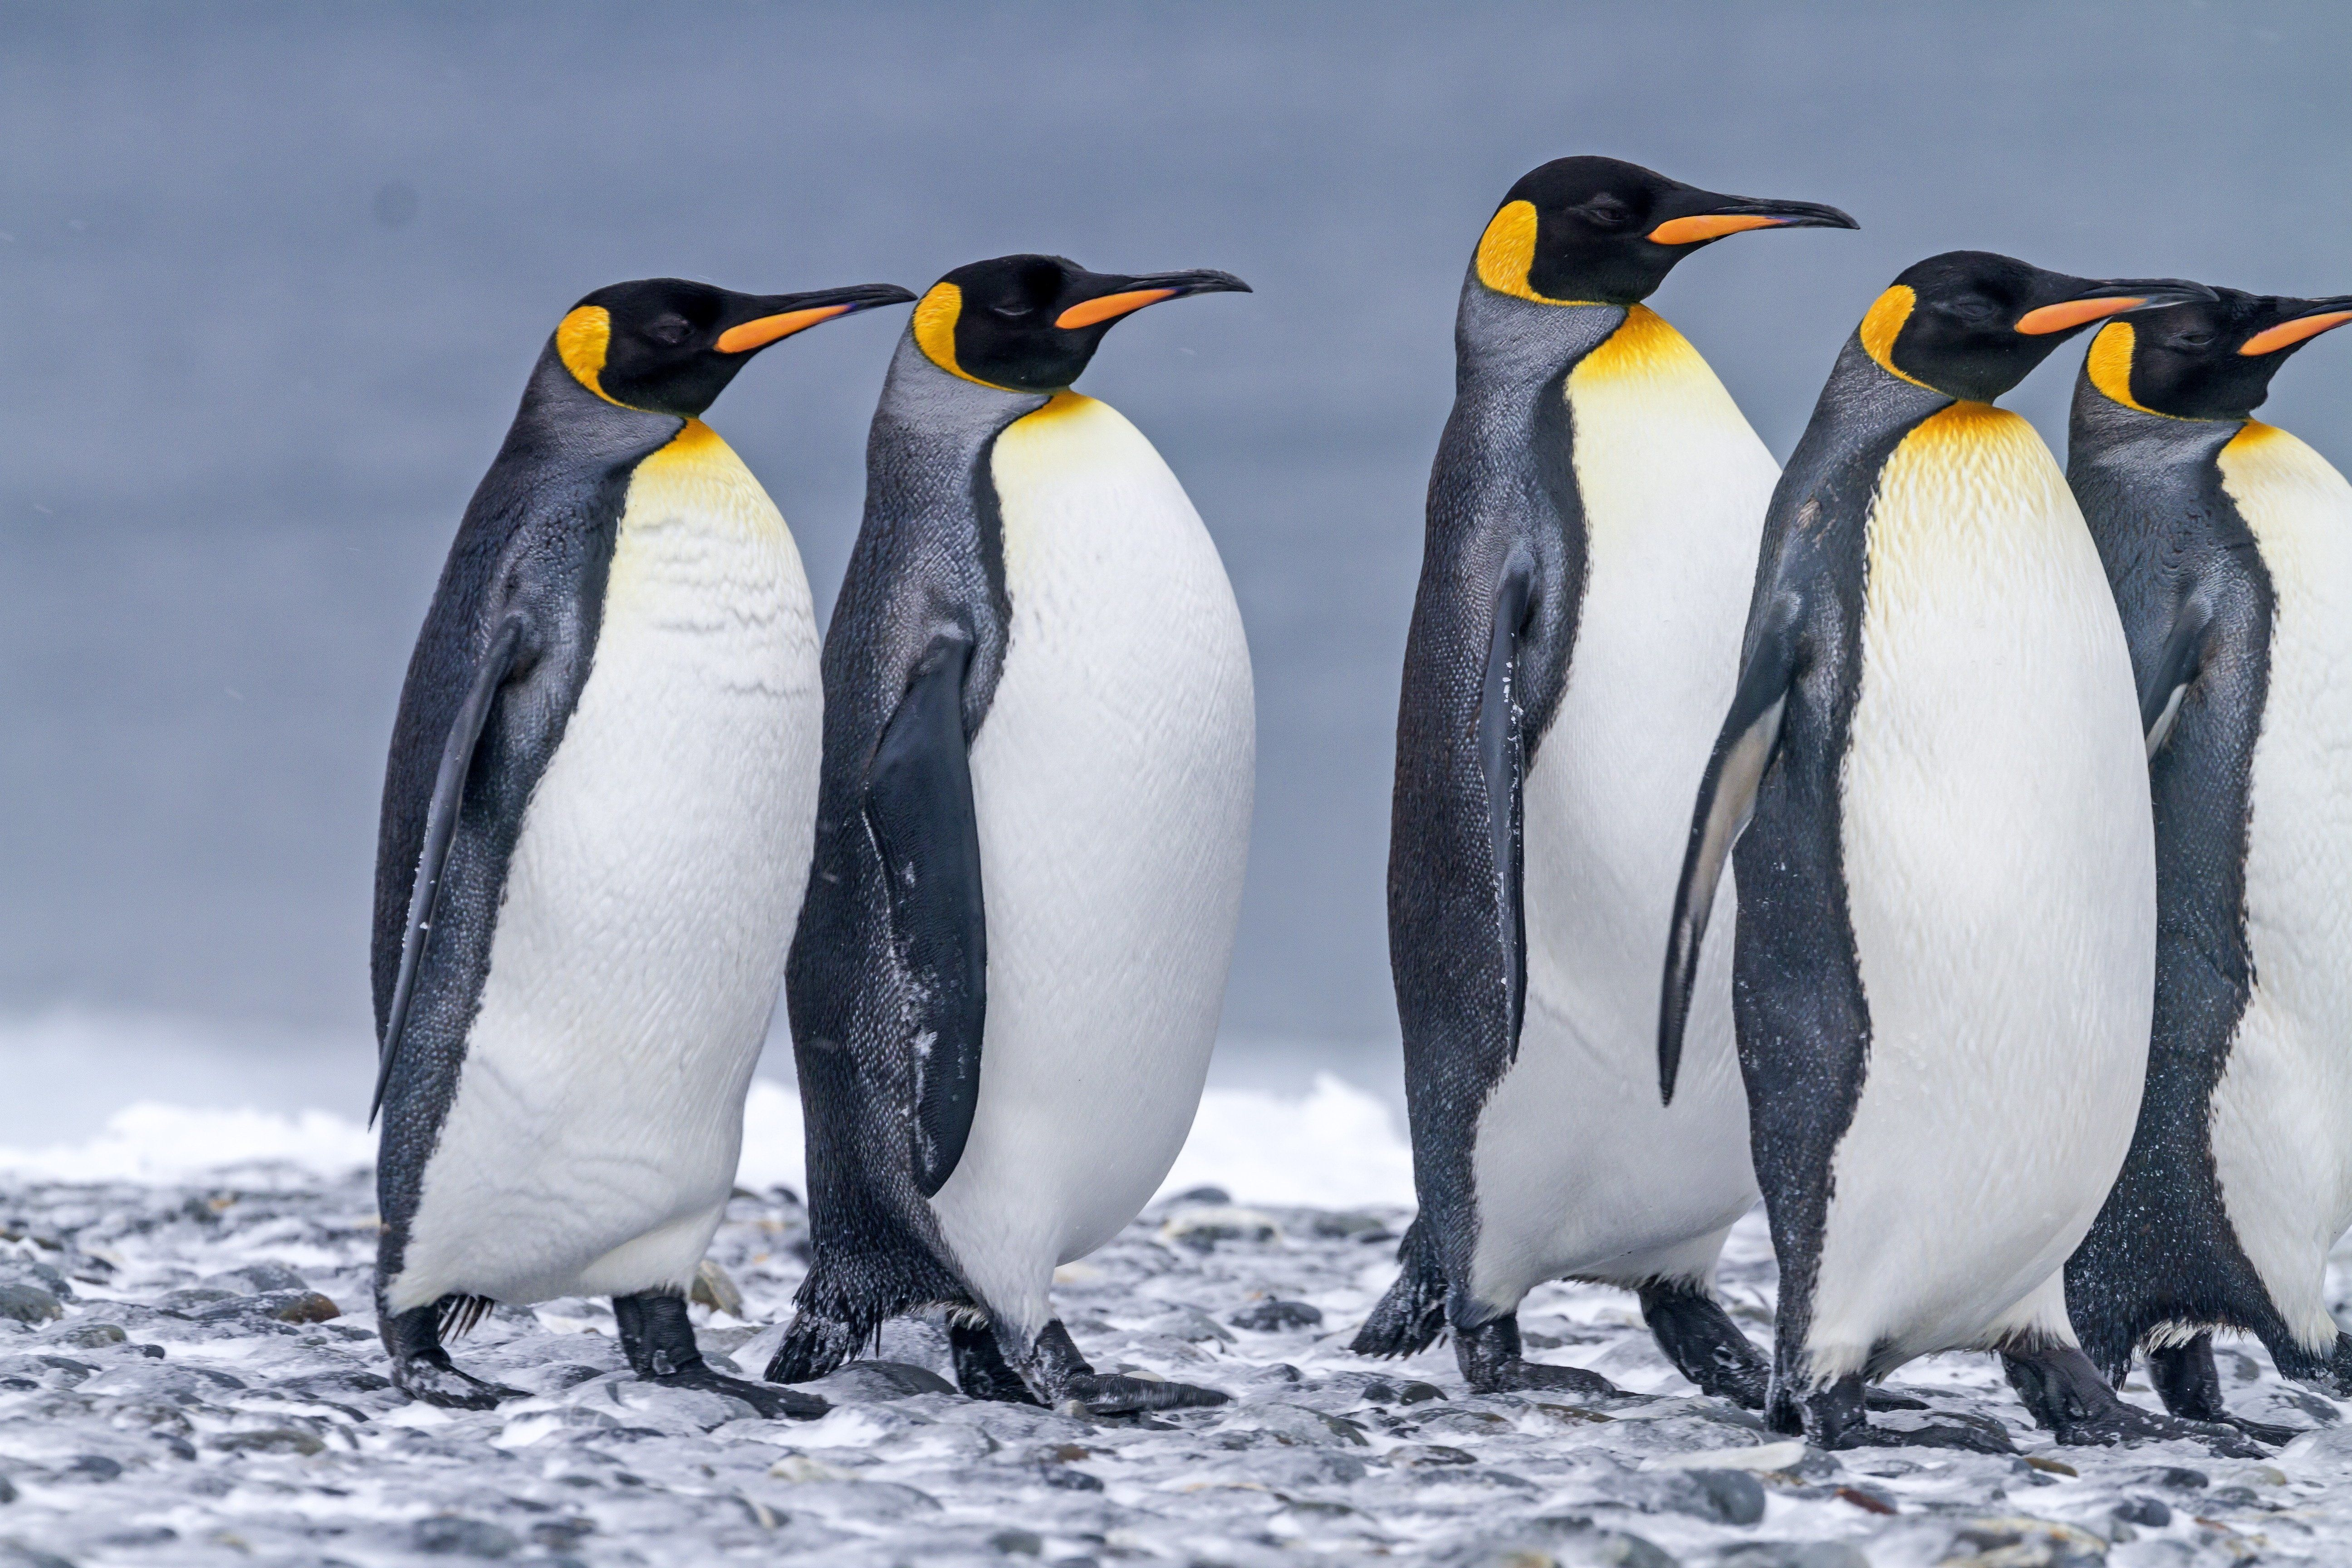 The population of the world's largest king penguin colony has shrunk by 90 percent since the 1980s, a new study&nb